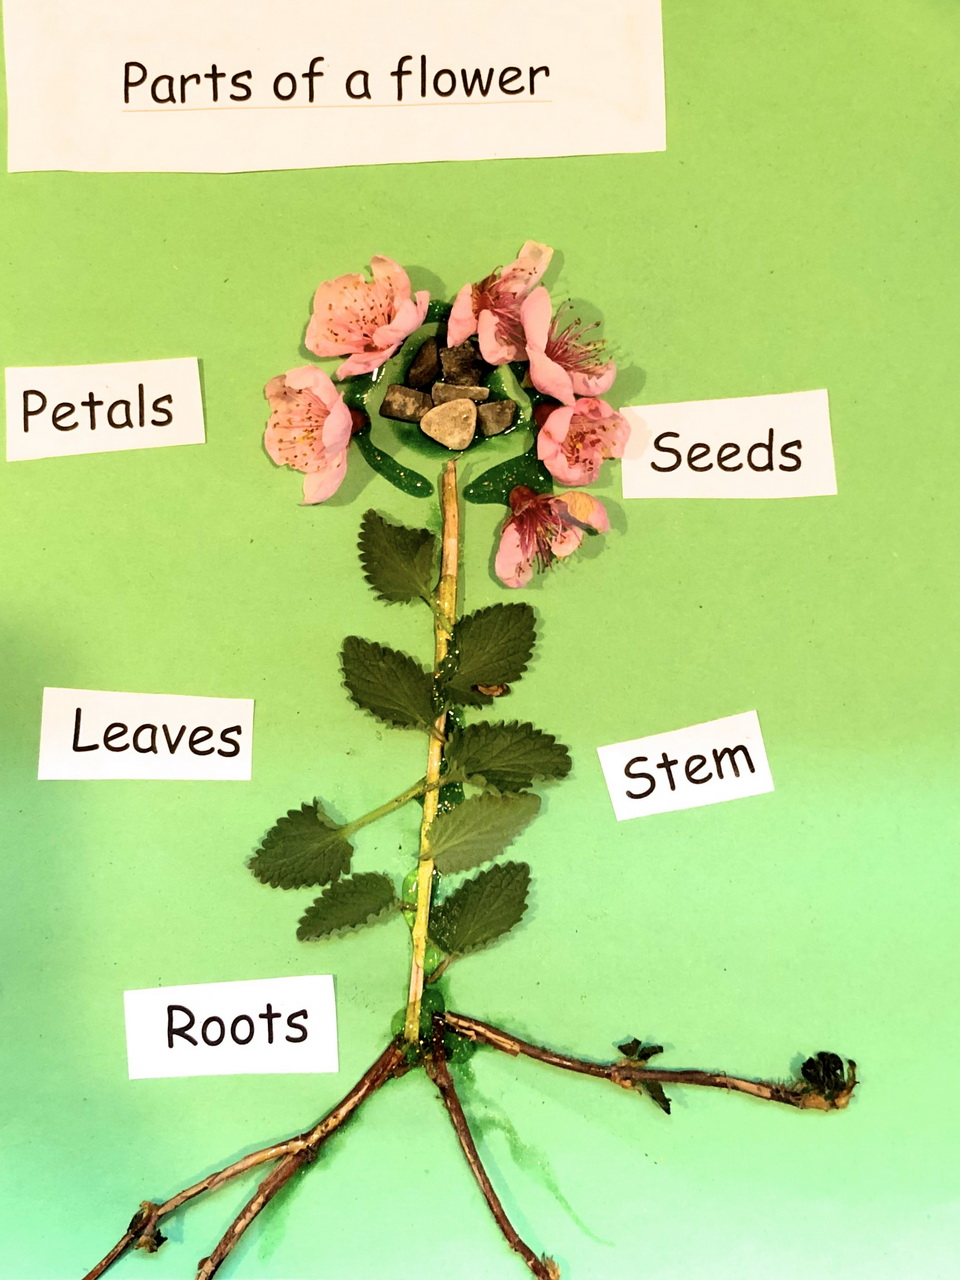 diagram showing parts of a flower